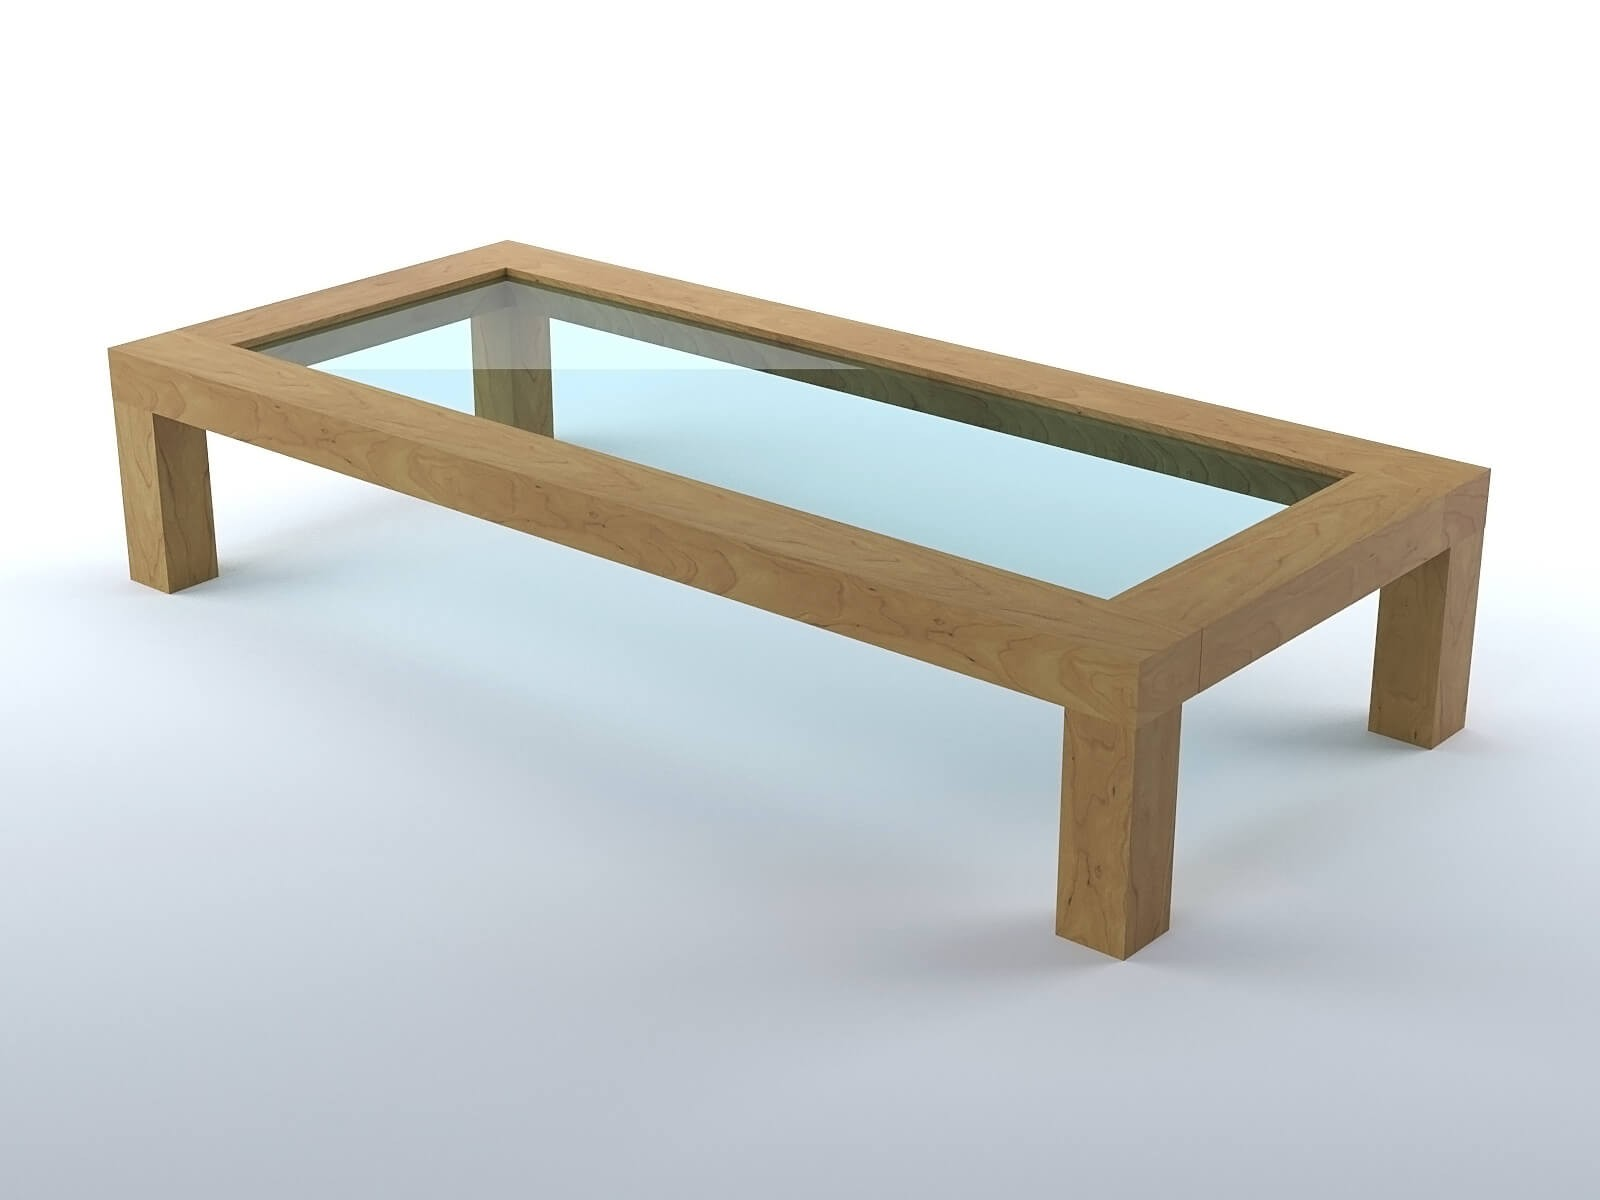 Tables Basses De Salon Pliantes Table Basse De Salon En Bois Modèle 3d